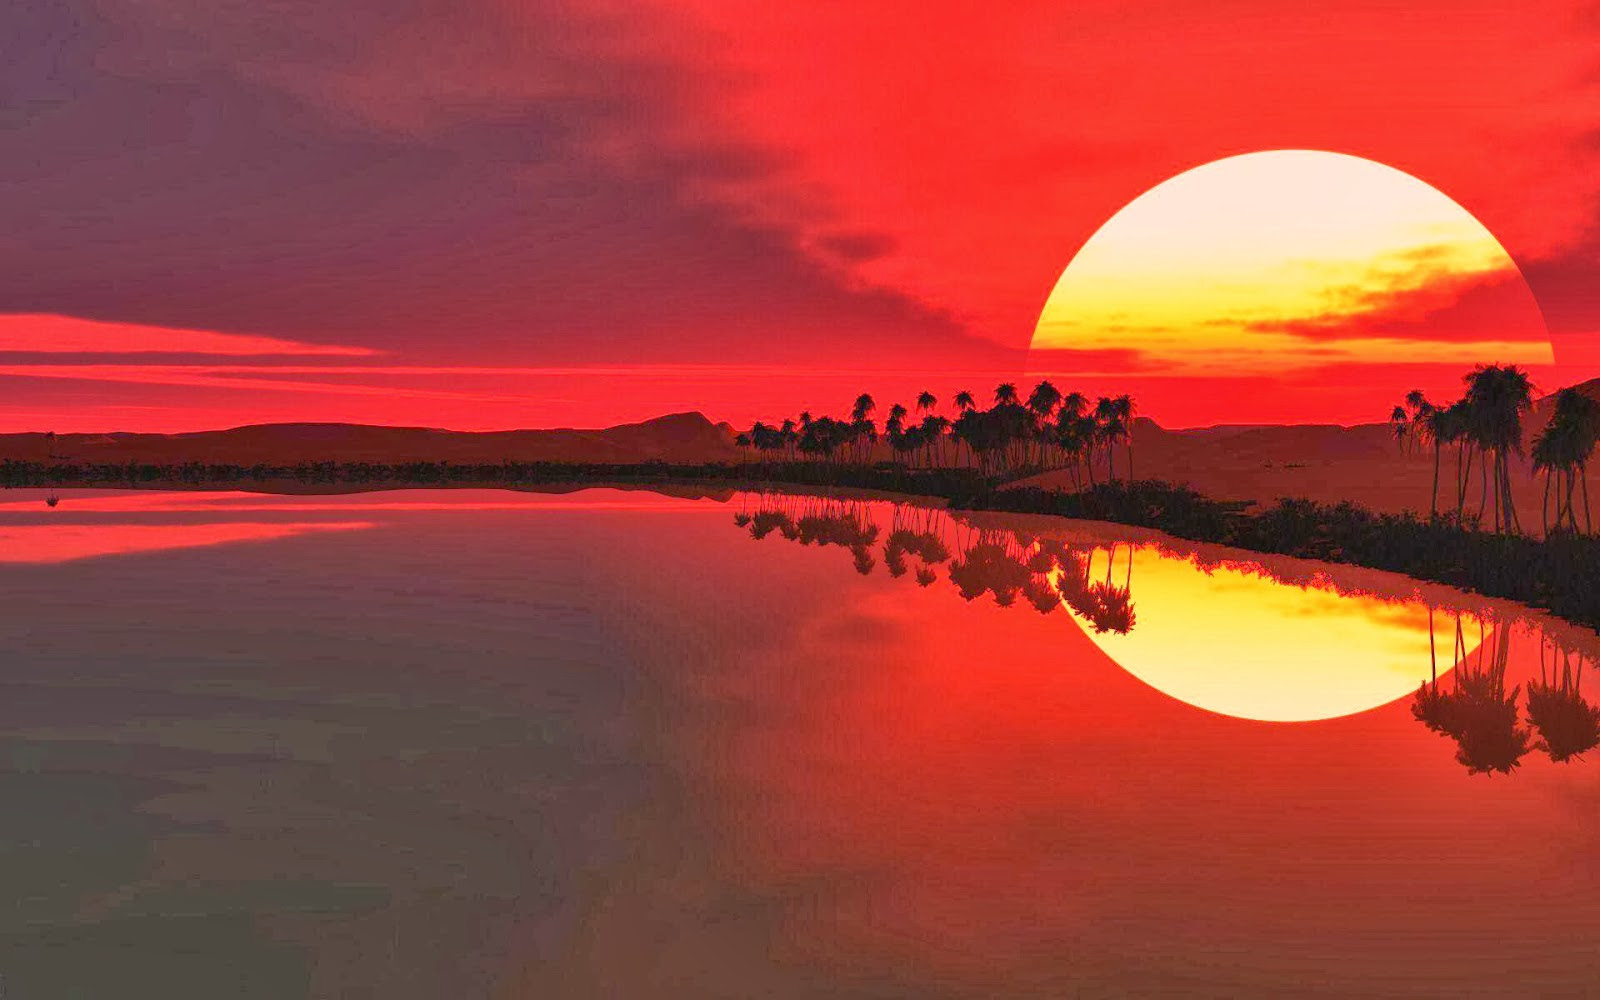 Hd Sunset Sunrise Wallpapers Wallpapersafari